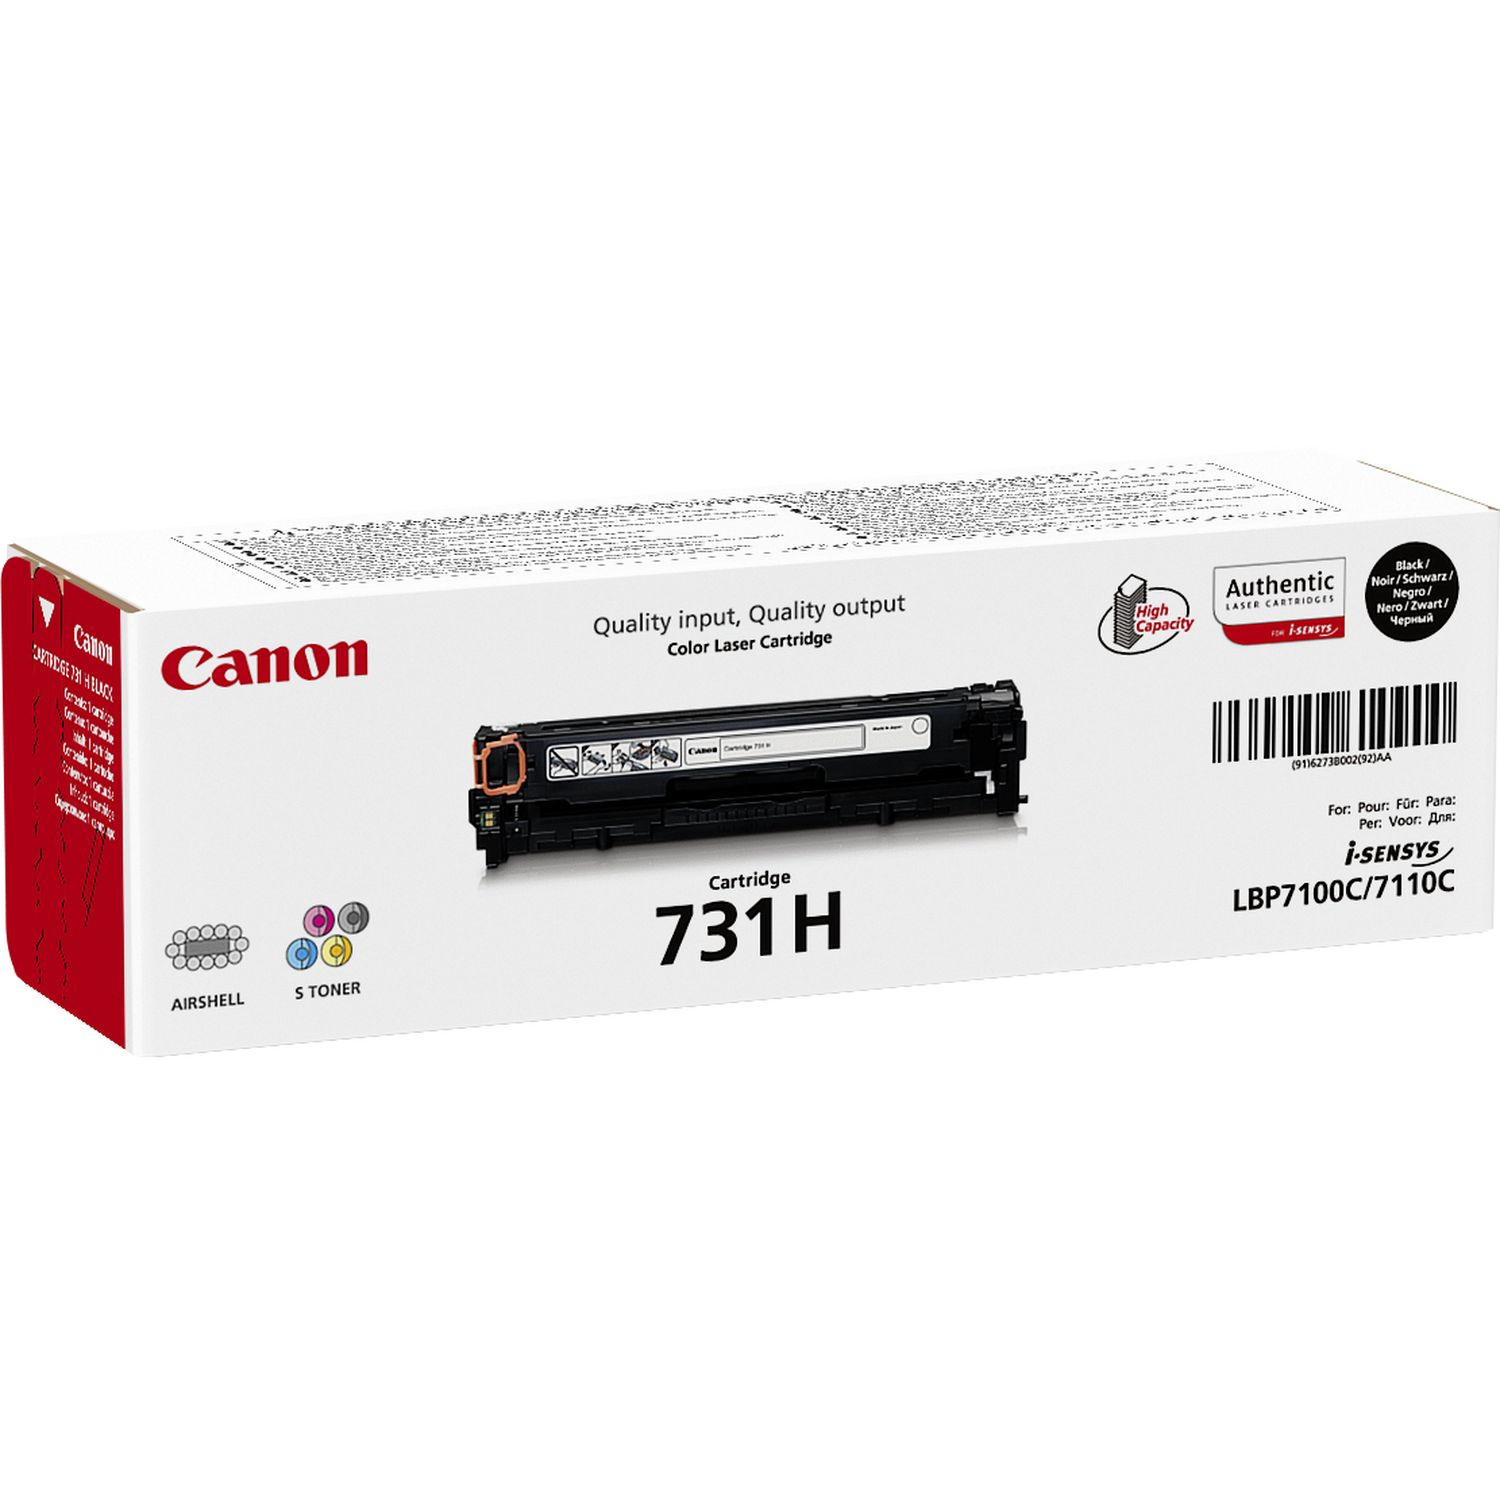 canon Canon 731 High Cap Black Cart 6273b002 - AD01